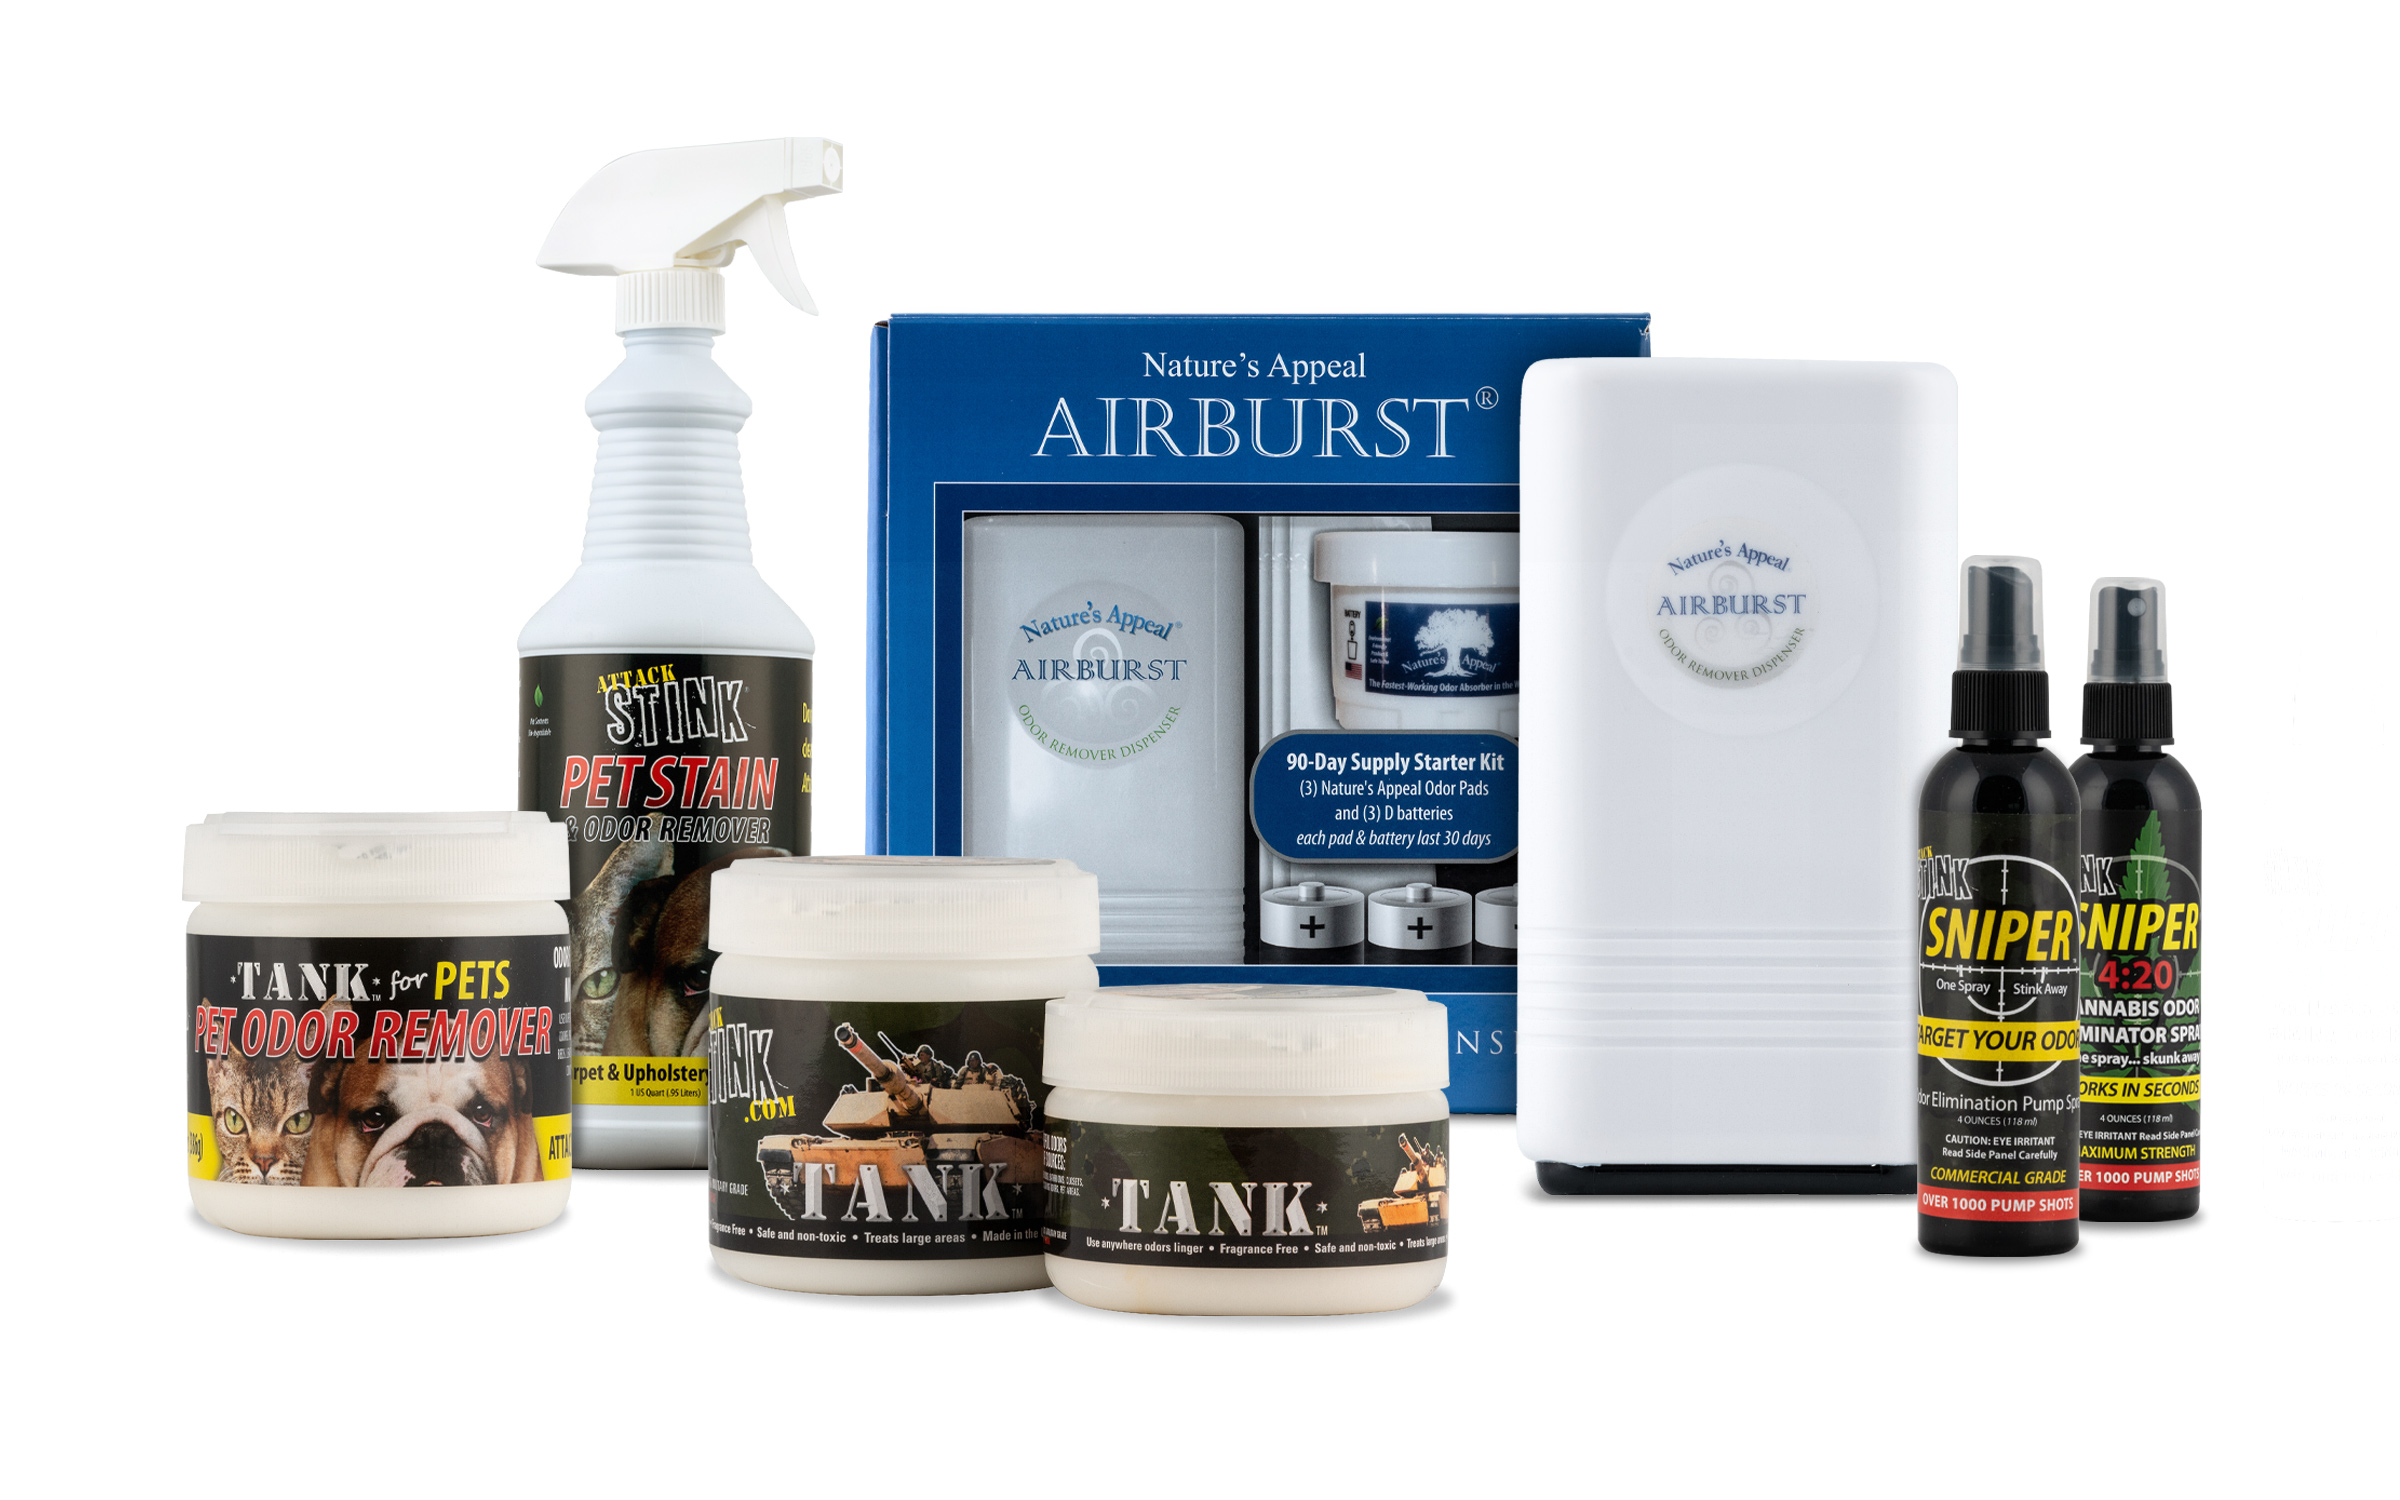 attack stink products